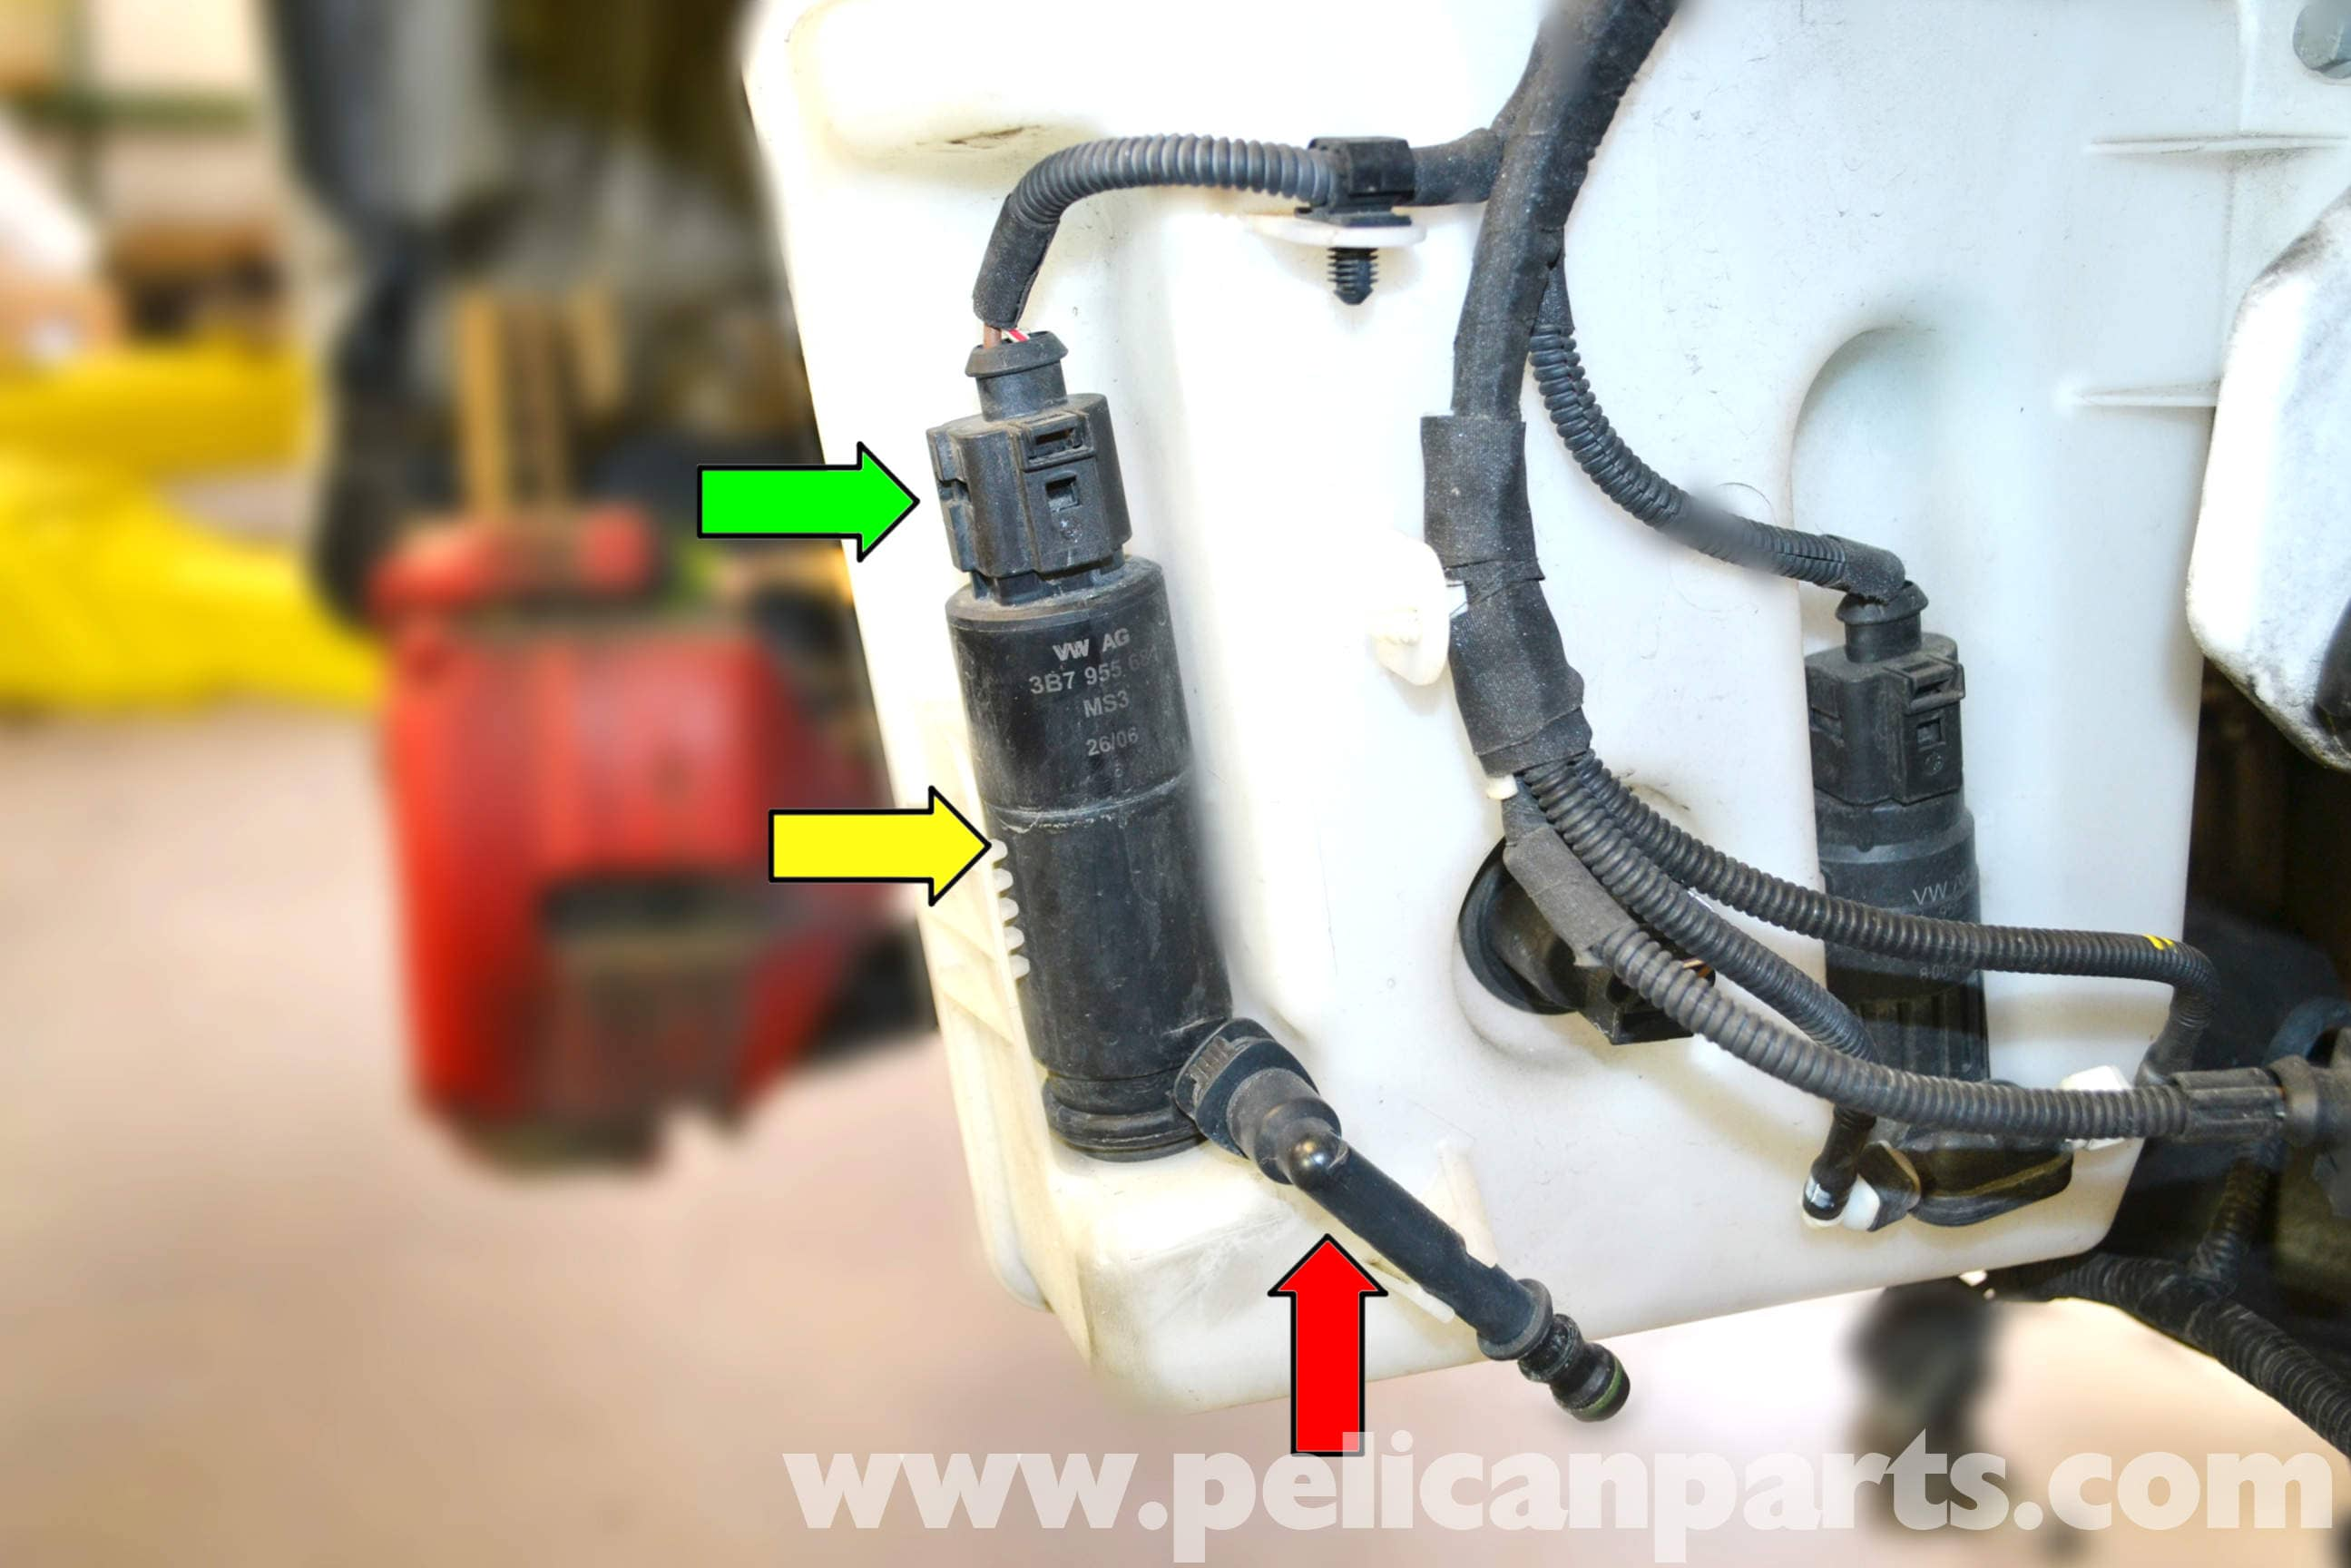 pic2 Wiring Grommet on wiring lamps, wiring plugs, wiring electrical, wiring accessories, wiring batteries, wiring terminals, wiring switches, wiring covers, wiring conduit, wiring nuts, wiring bolts,